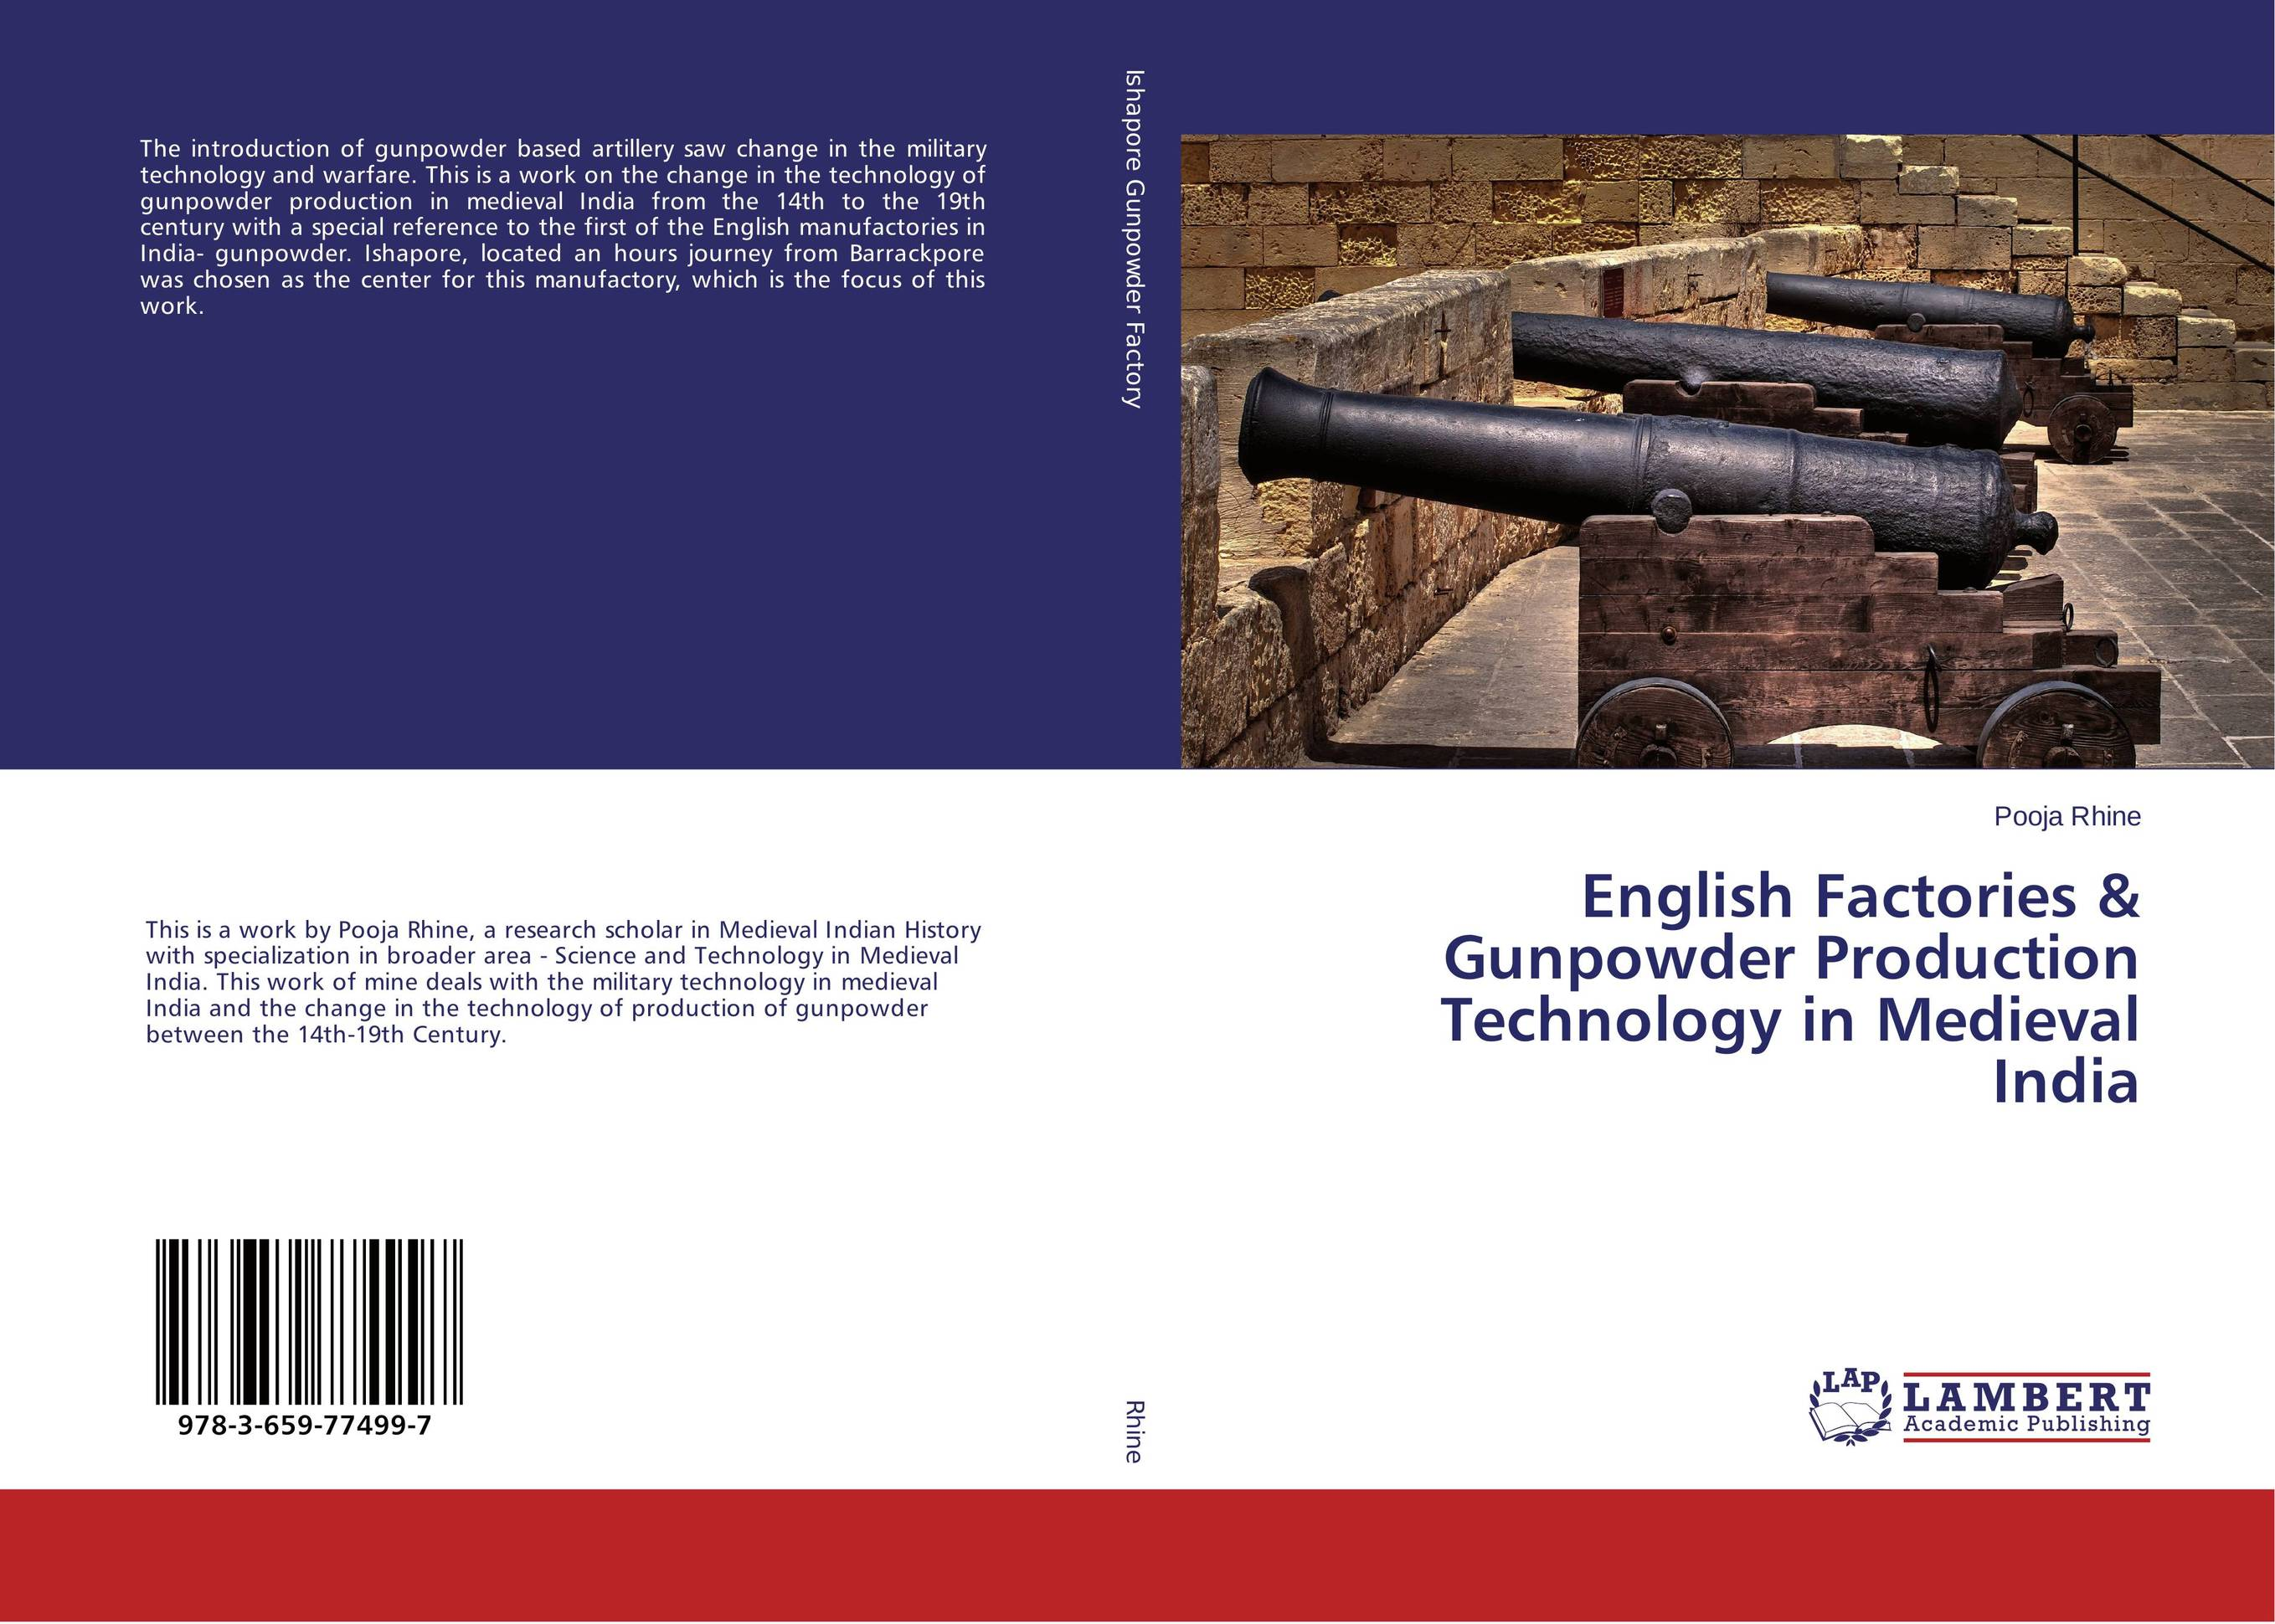 English Factories & Gunpowder Production Technology in Medieval India muhammad firdaus sulaiman estimation of carbon footprint in jatropha curcas seed production